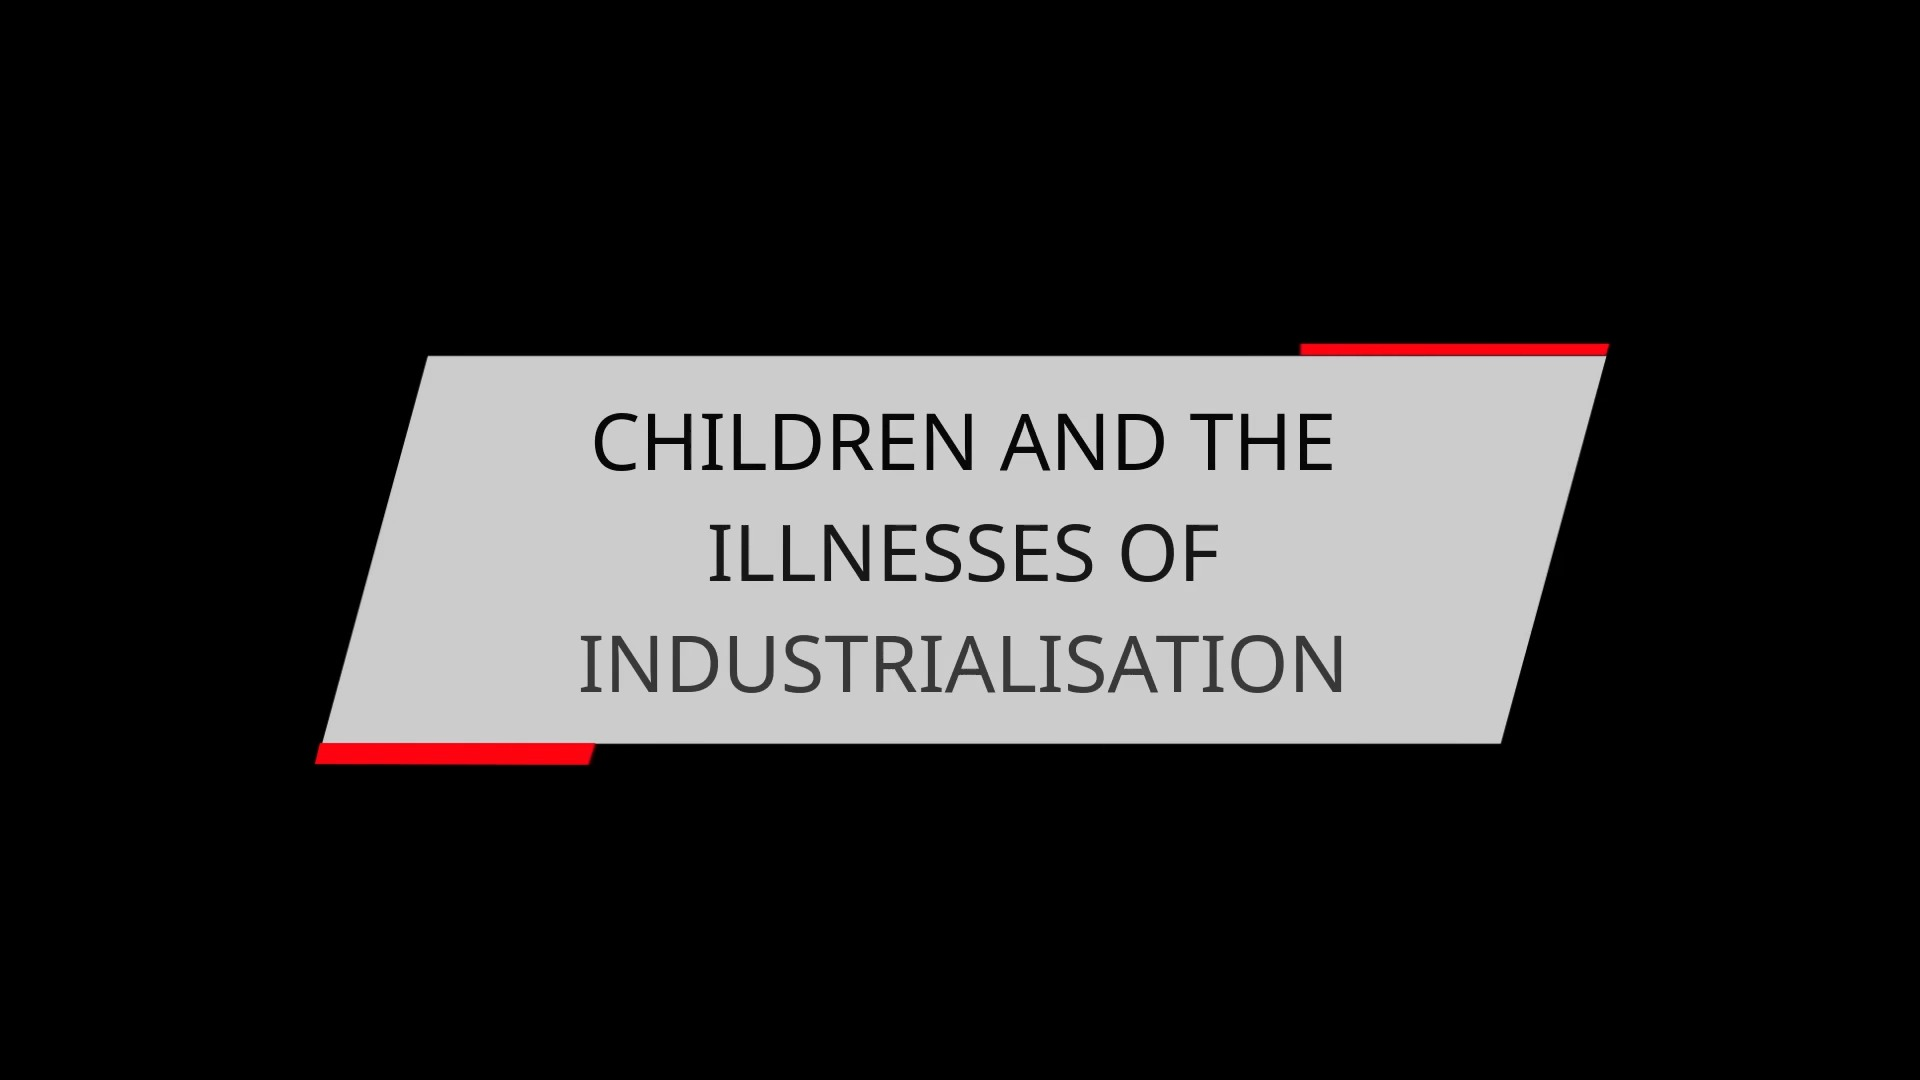 CHILDREN AND THE ILLNESSES OF INDUSTRIALISATION